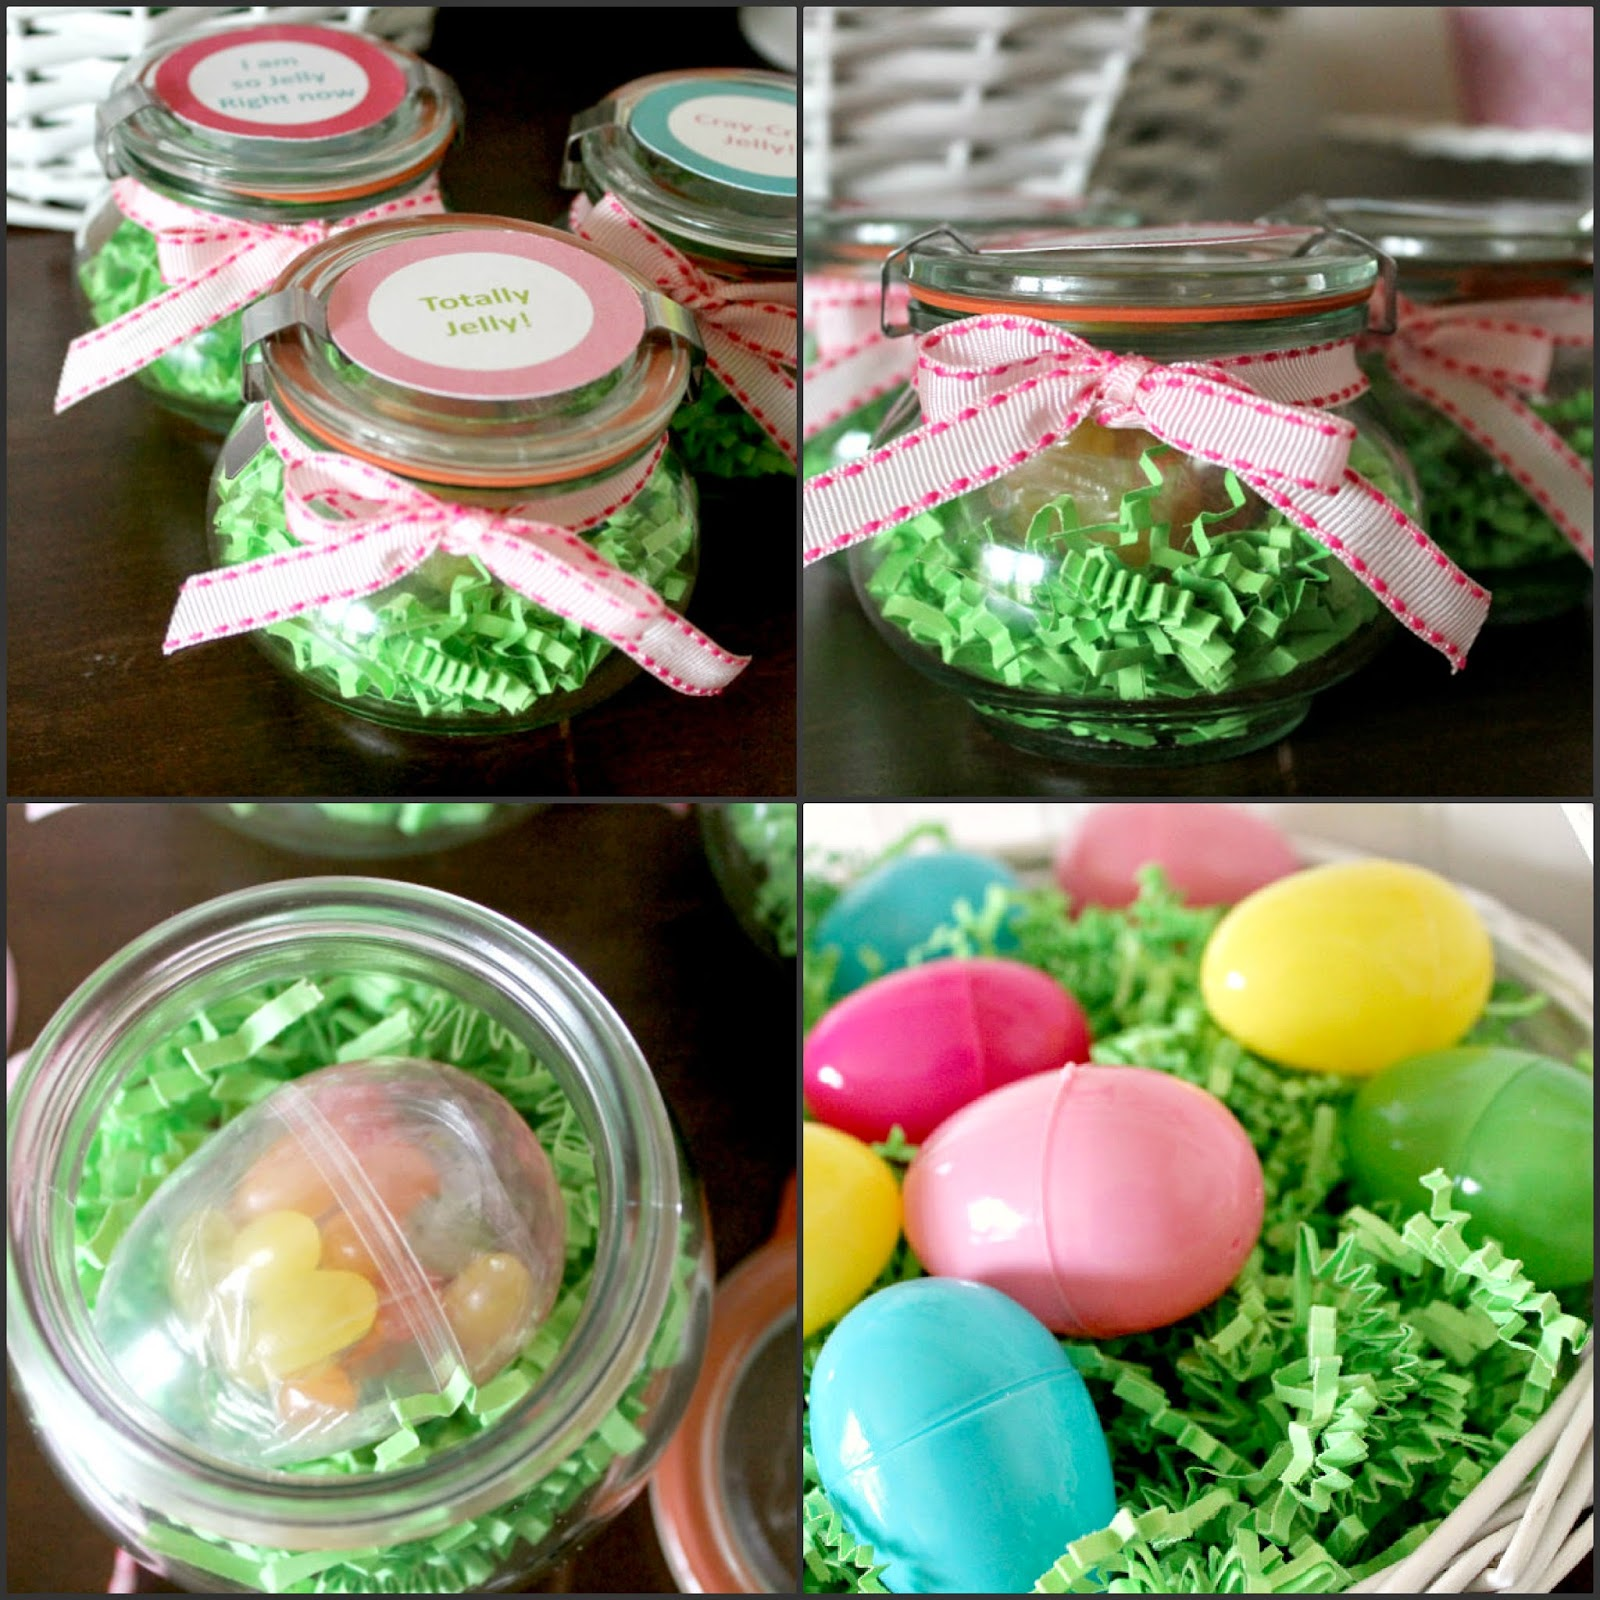 Cupcake wishes birthday dreams dont be jelly fun jelly bean make your own easy easter candy you can use this recipe to make jelly bean bark and place the bark in an acrylic truffle box with a bit of paper shred negle Image collections